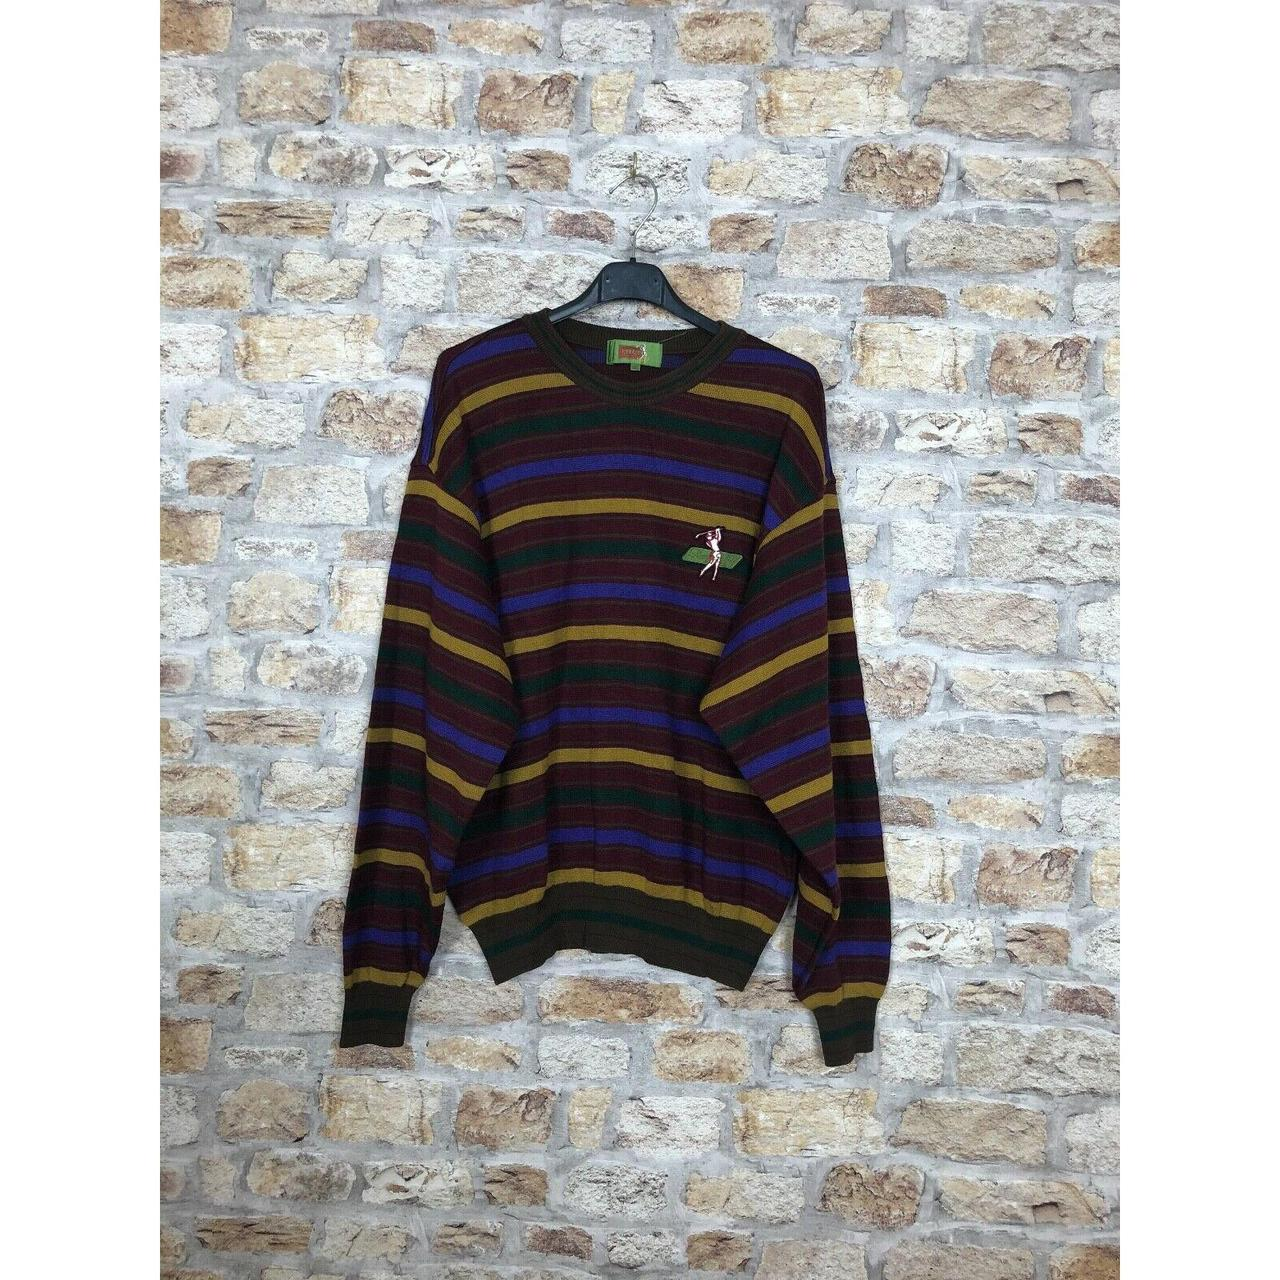 Product Image 1 - VINTAGE 90'S COSBY RAINBOW STRIPE